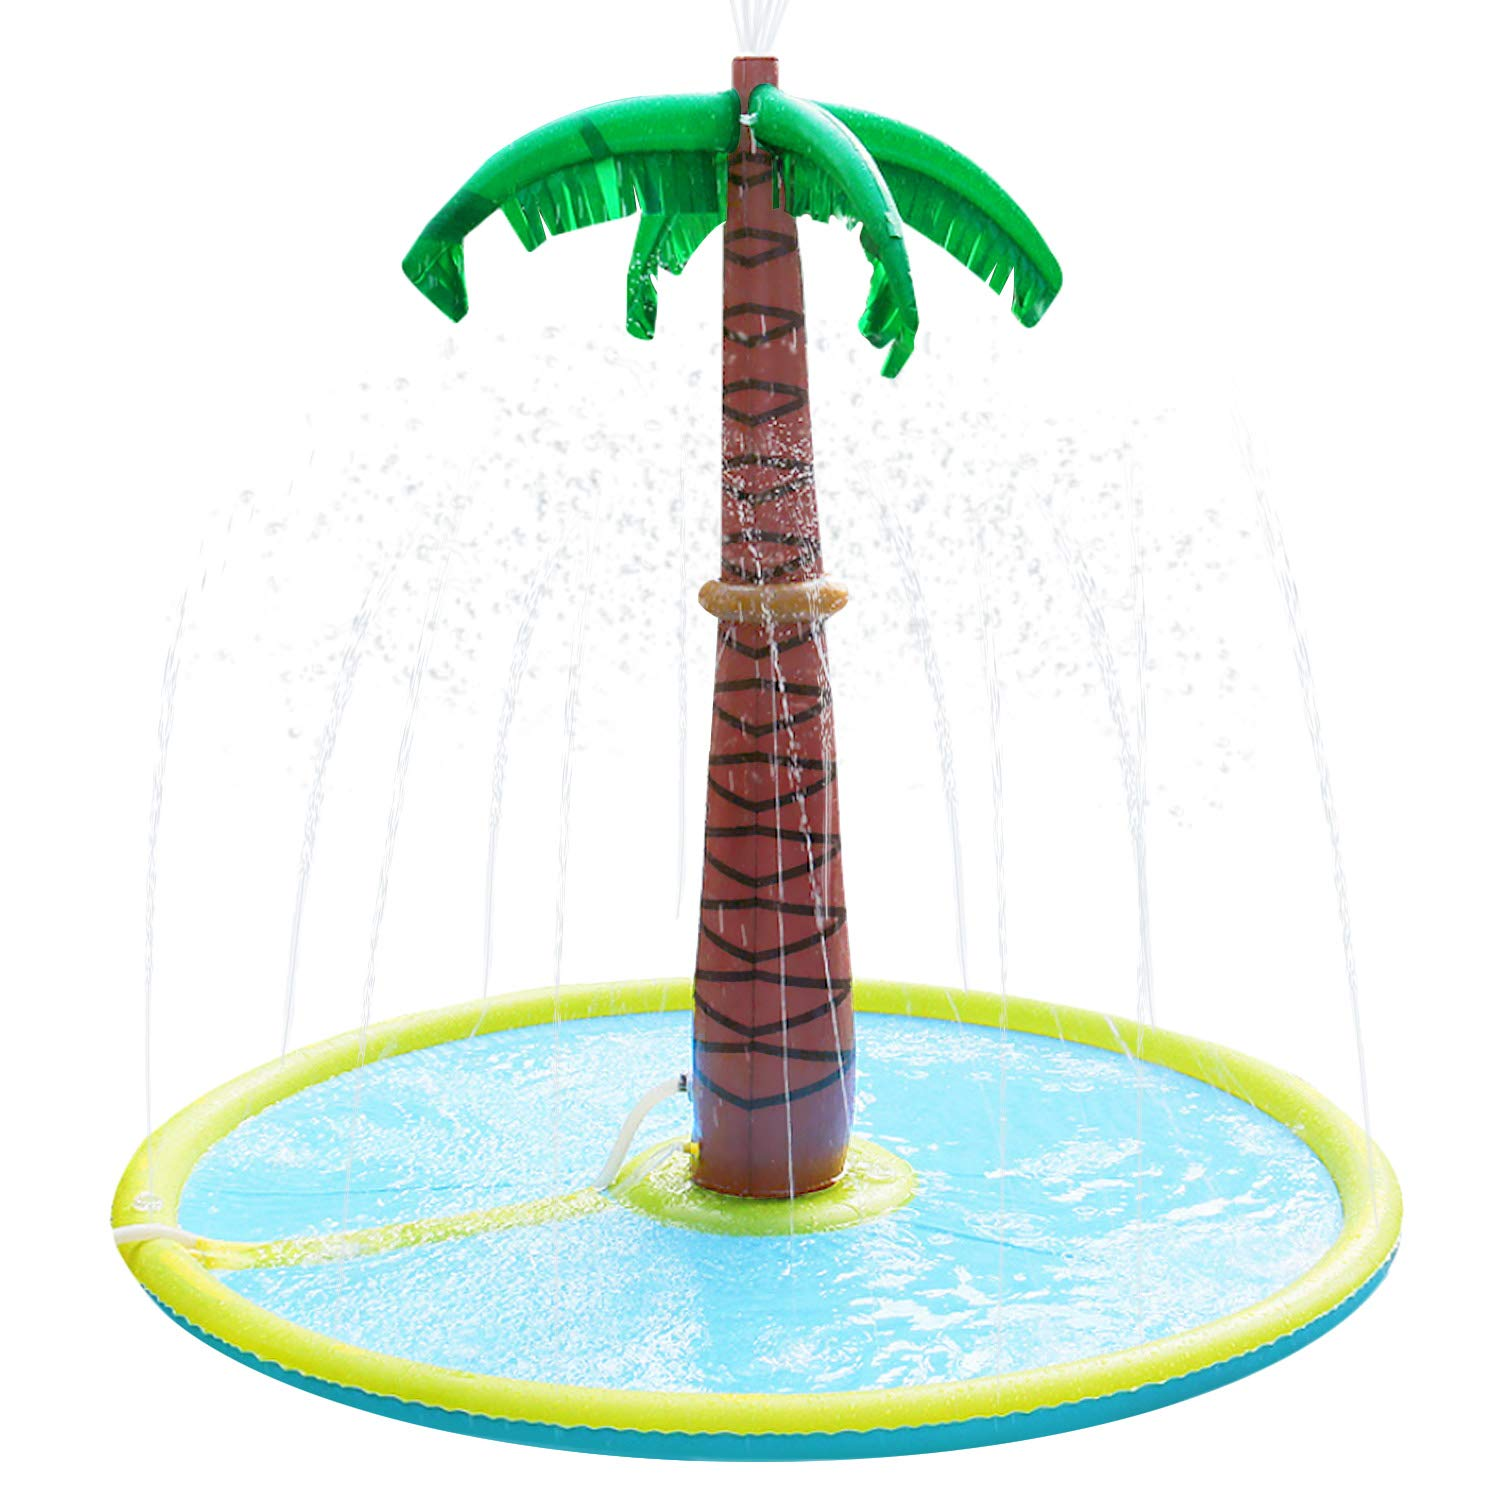 Satkago Coconut Tree Inflatable Water Sprinkle Play Mat Summer Backyard Outdoor Sprinkler Toy for Children Kids Toddlers